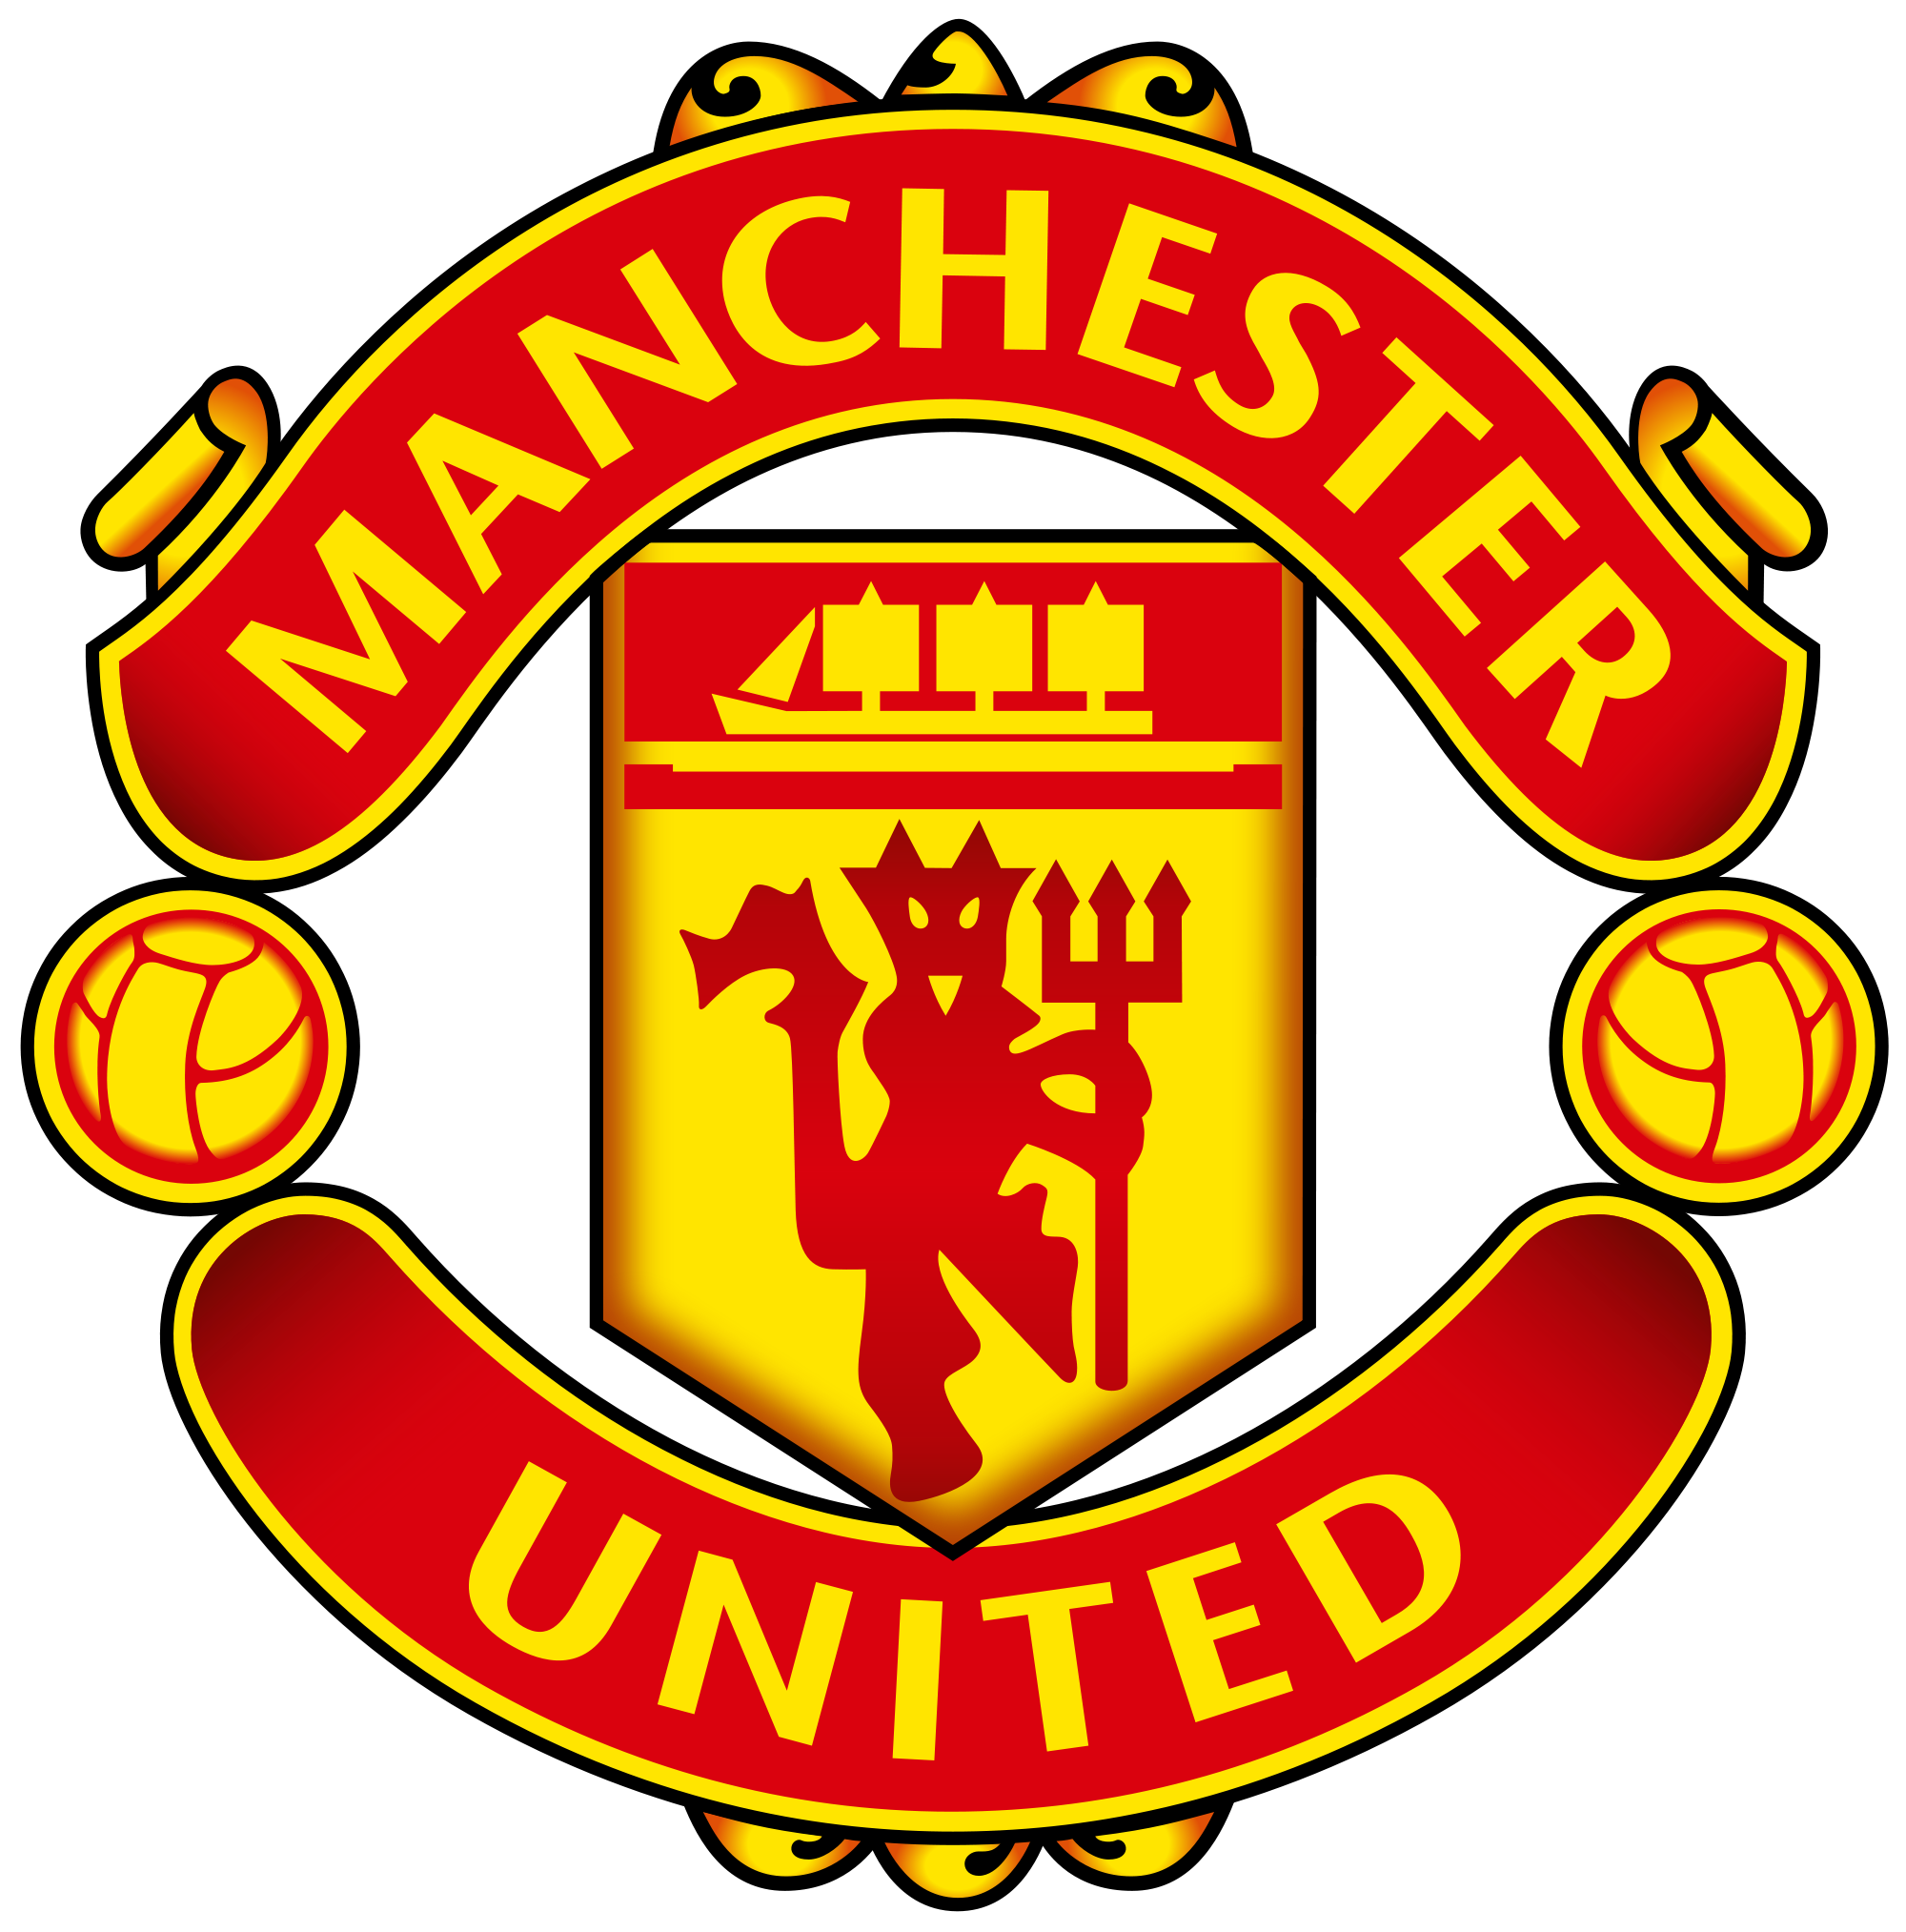 Manchester United Football Club In 2020 Manchester United Logo Manchester United Football Manchester United